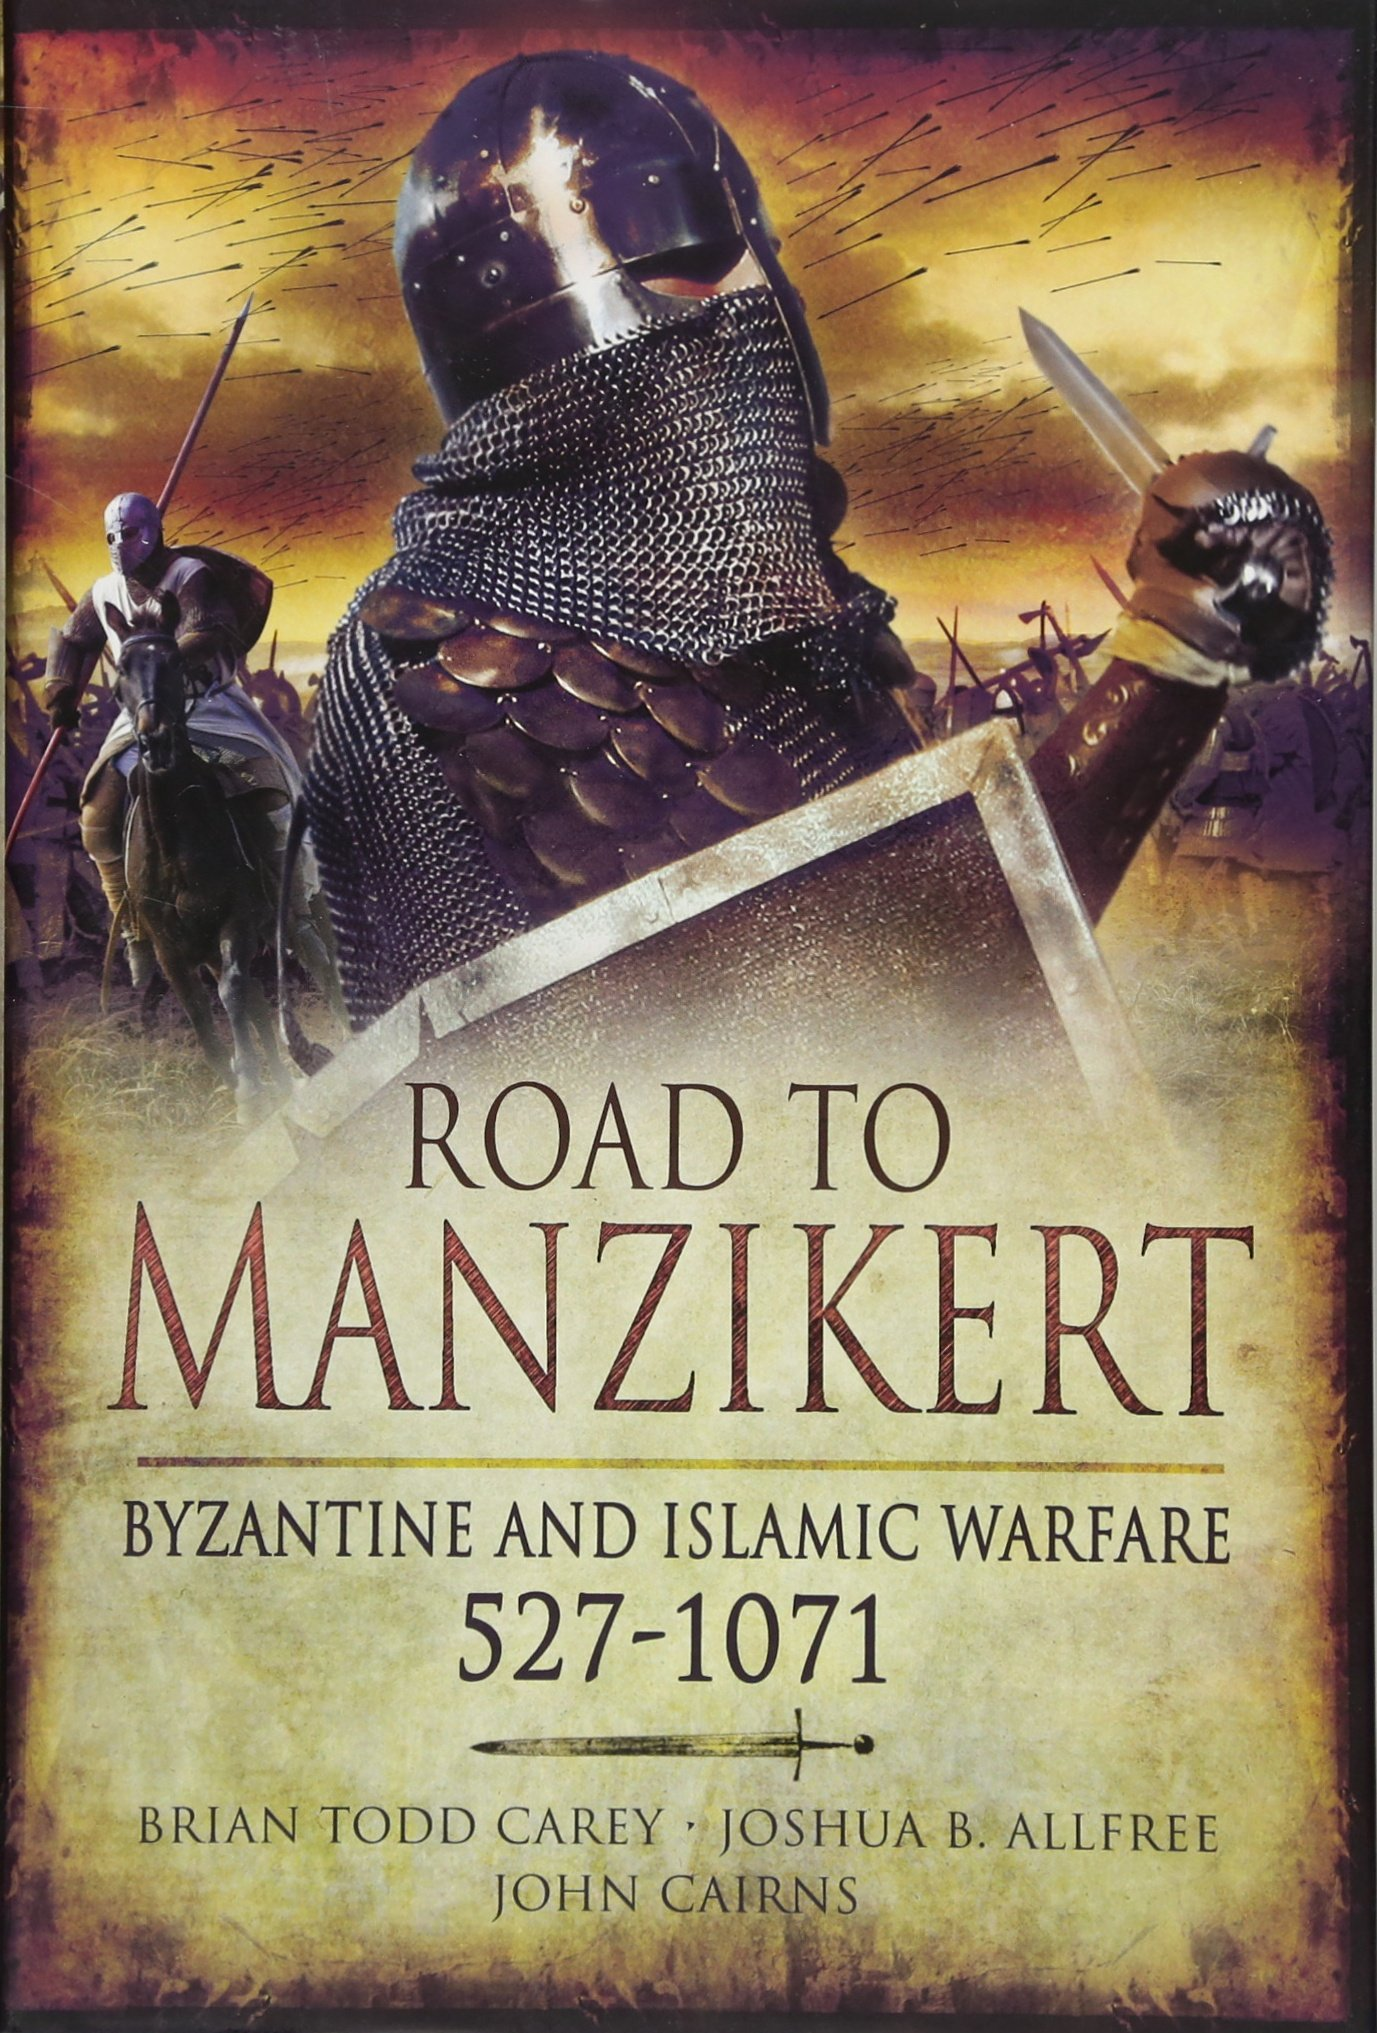 Road to Manzikert: Byzantine and Islamic Warfare, 527-1071: Brian Todd  Carey, Joshua Allfree, John Cairns: 9781848842151: Amazon.com: Books